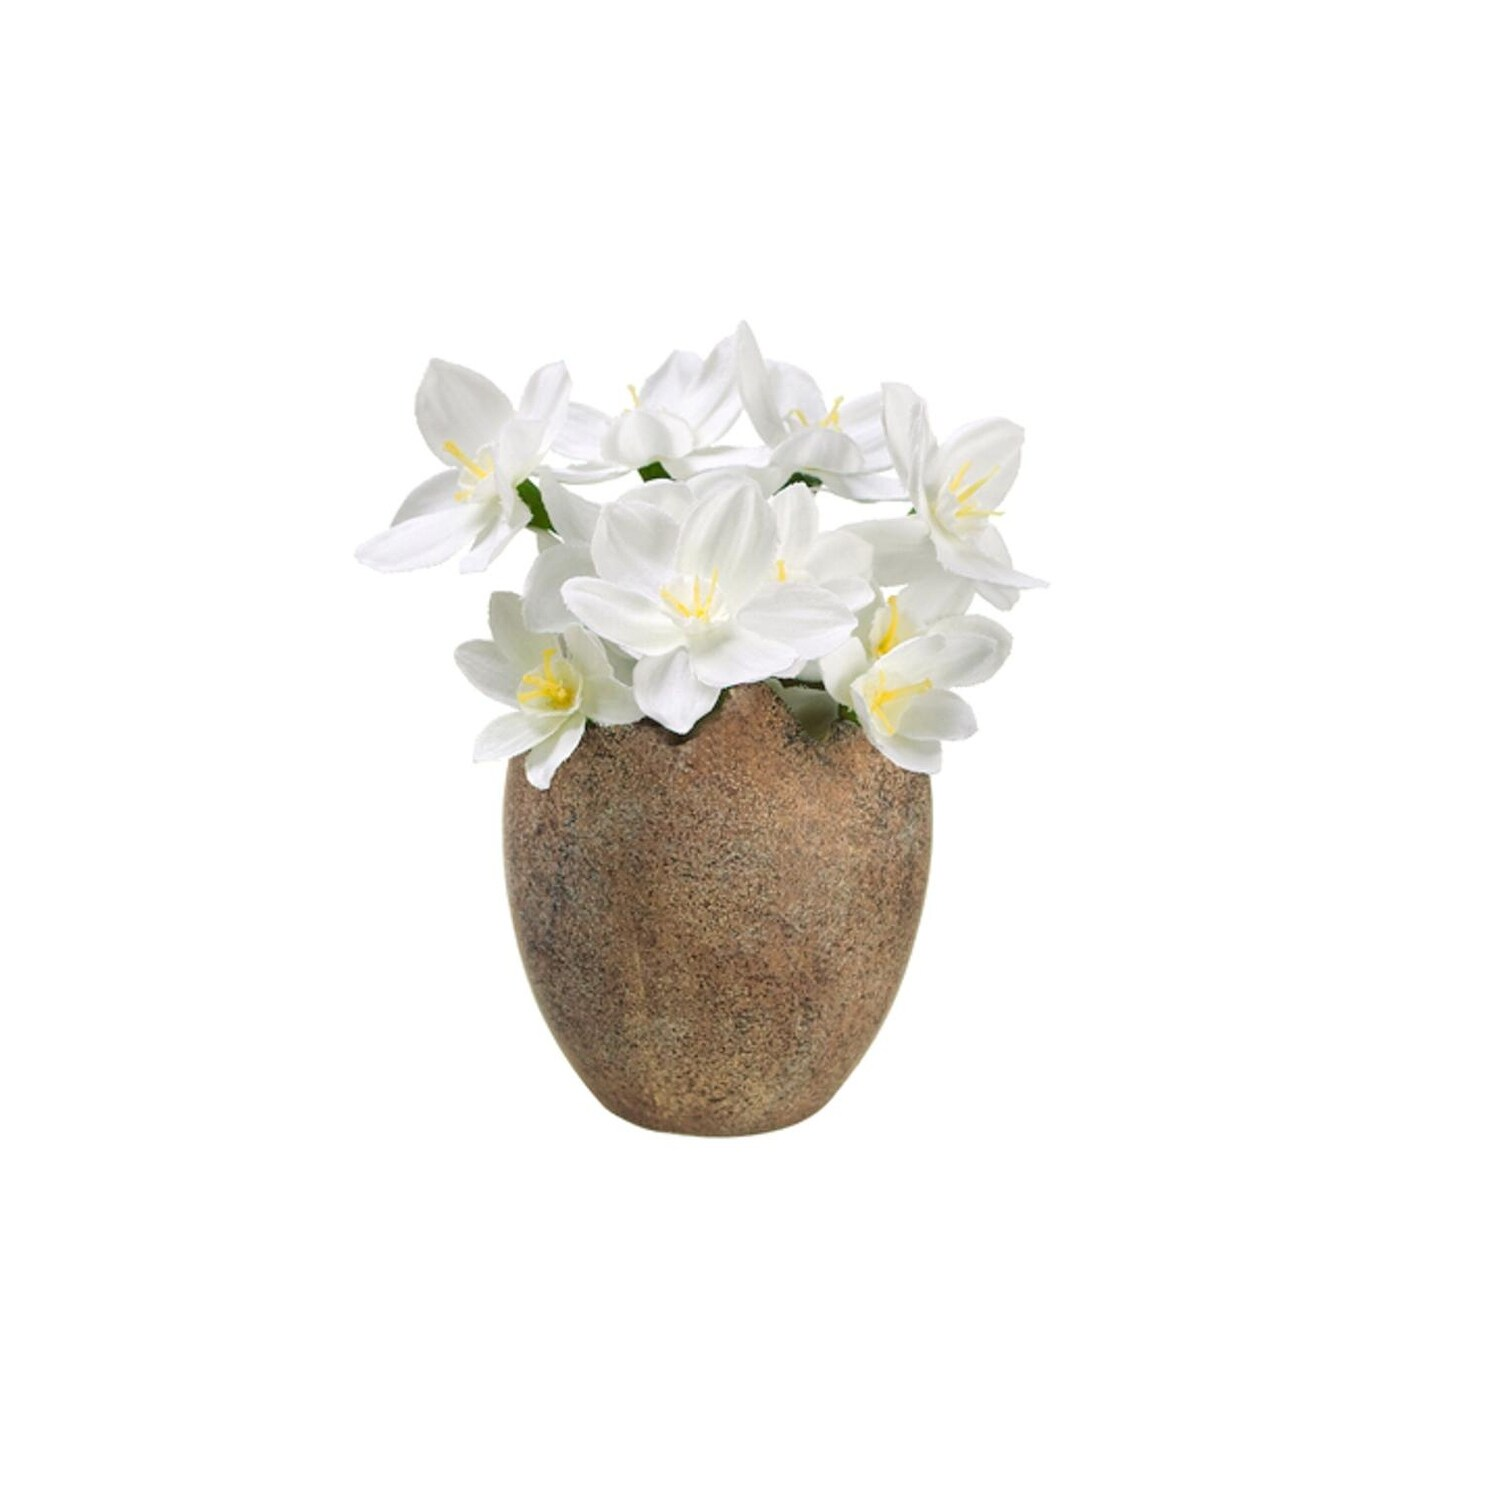 Shop 45 Decorative Paperwhite Silk Flowers Potted In Easter Egg